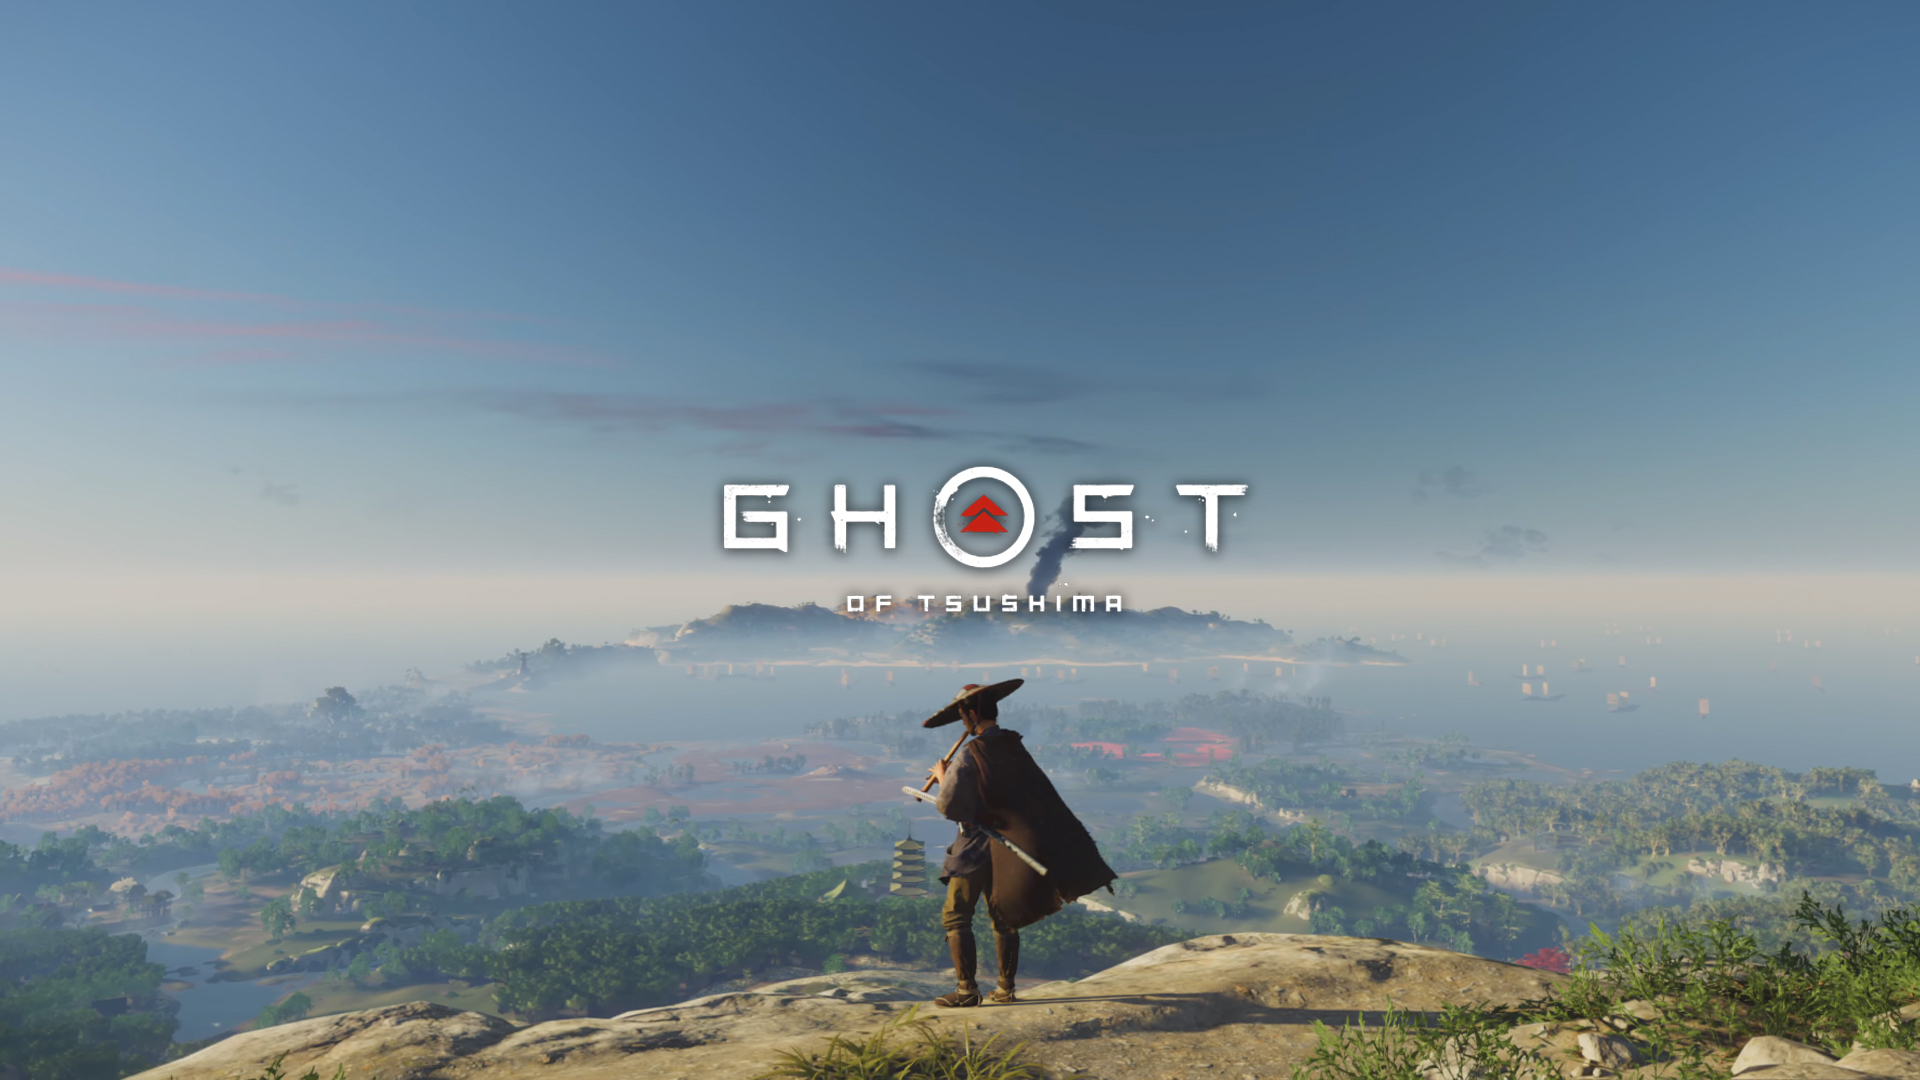 Ghost of Tsushima State of Play Video Shows Subtle Wayfinding and Exploration